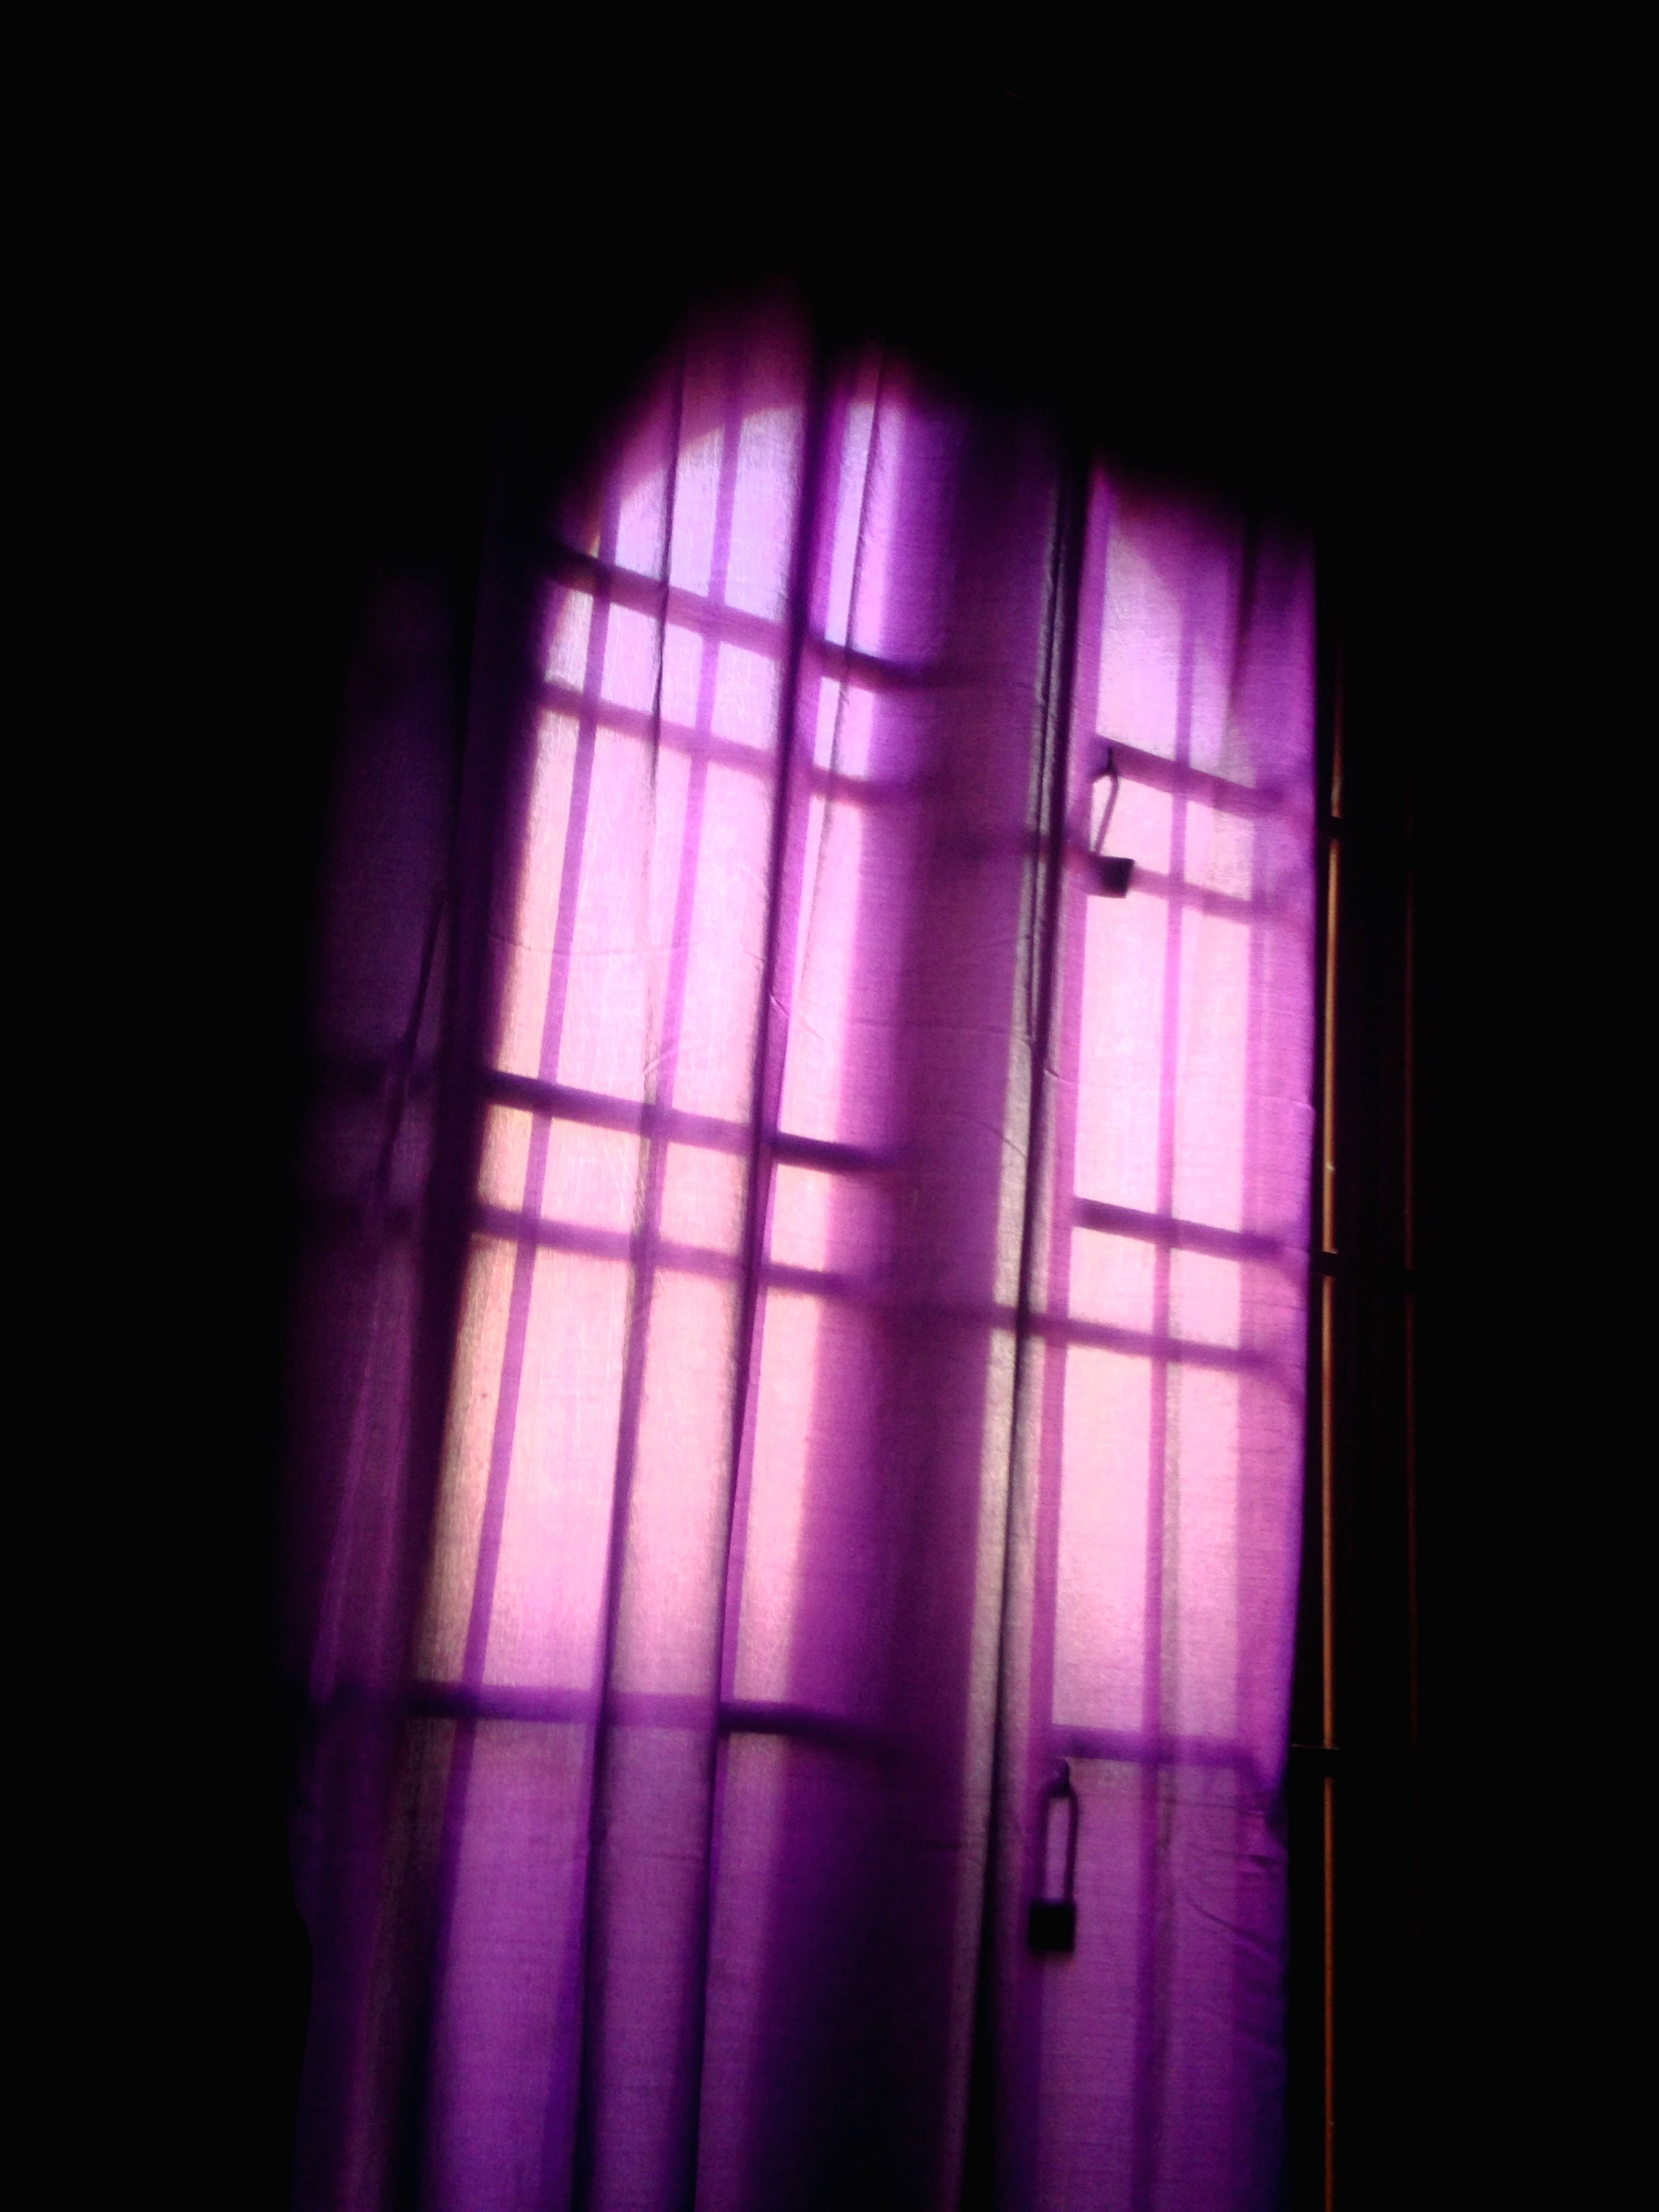 indoors, window, wall - building feature, curtain, closed, home interior, wall, built structure, door, architecture, dark, house, domestic room, no people, room, glass - material, copy space, sunlight, shadow, transparent